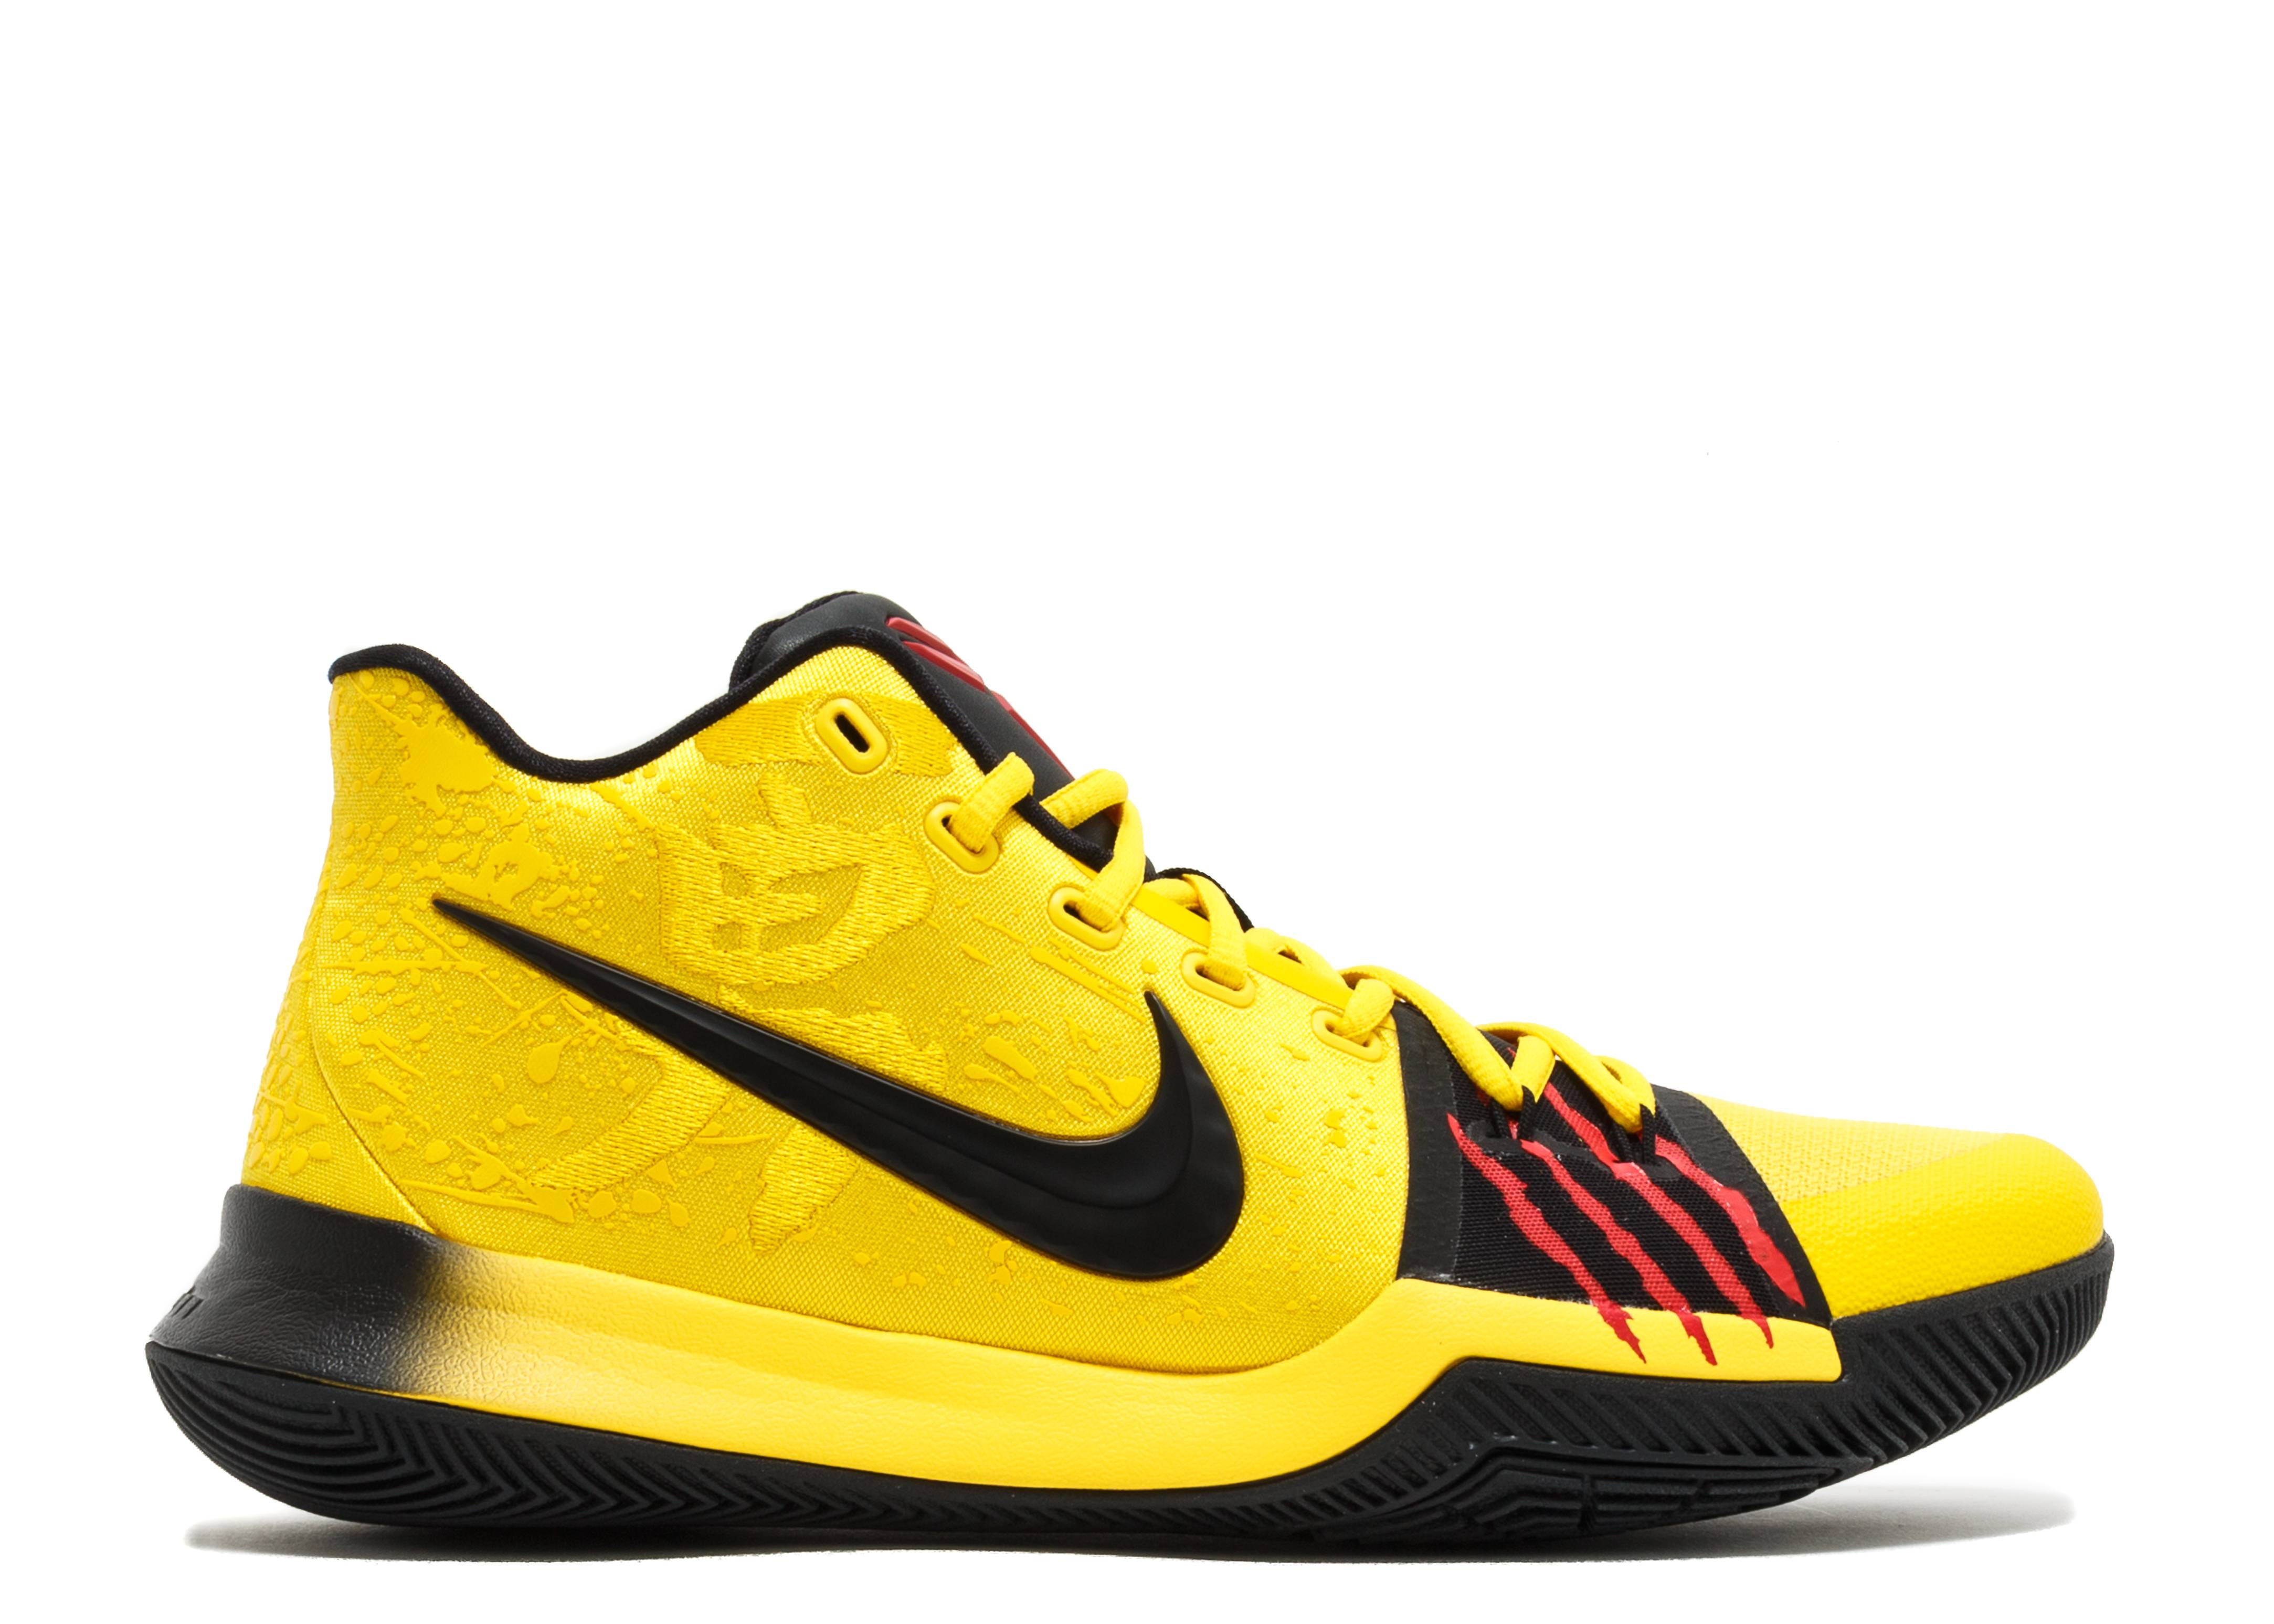 kyle irving shoes